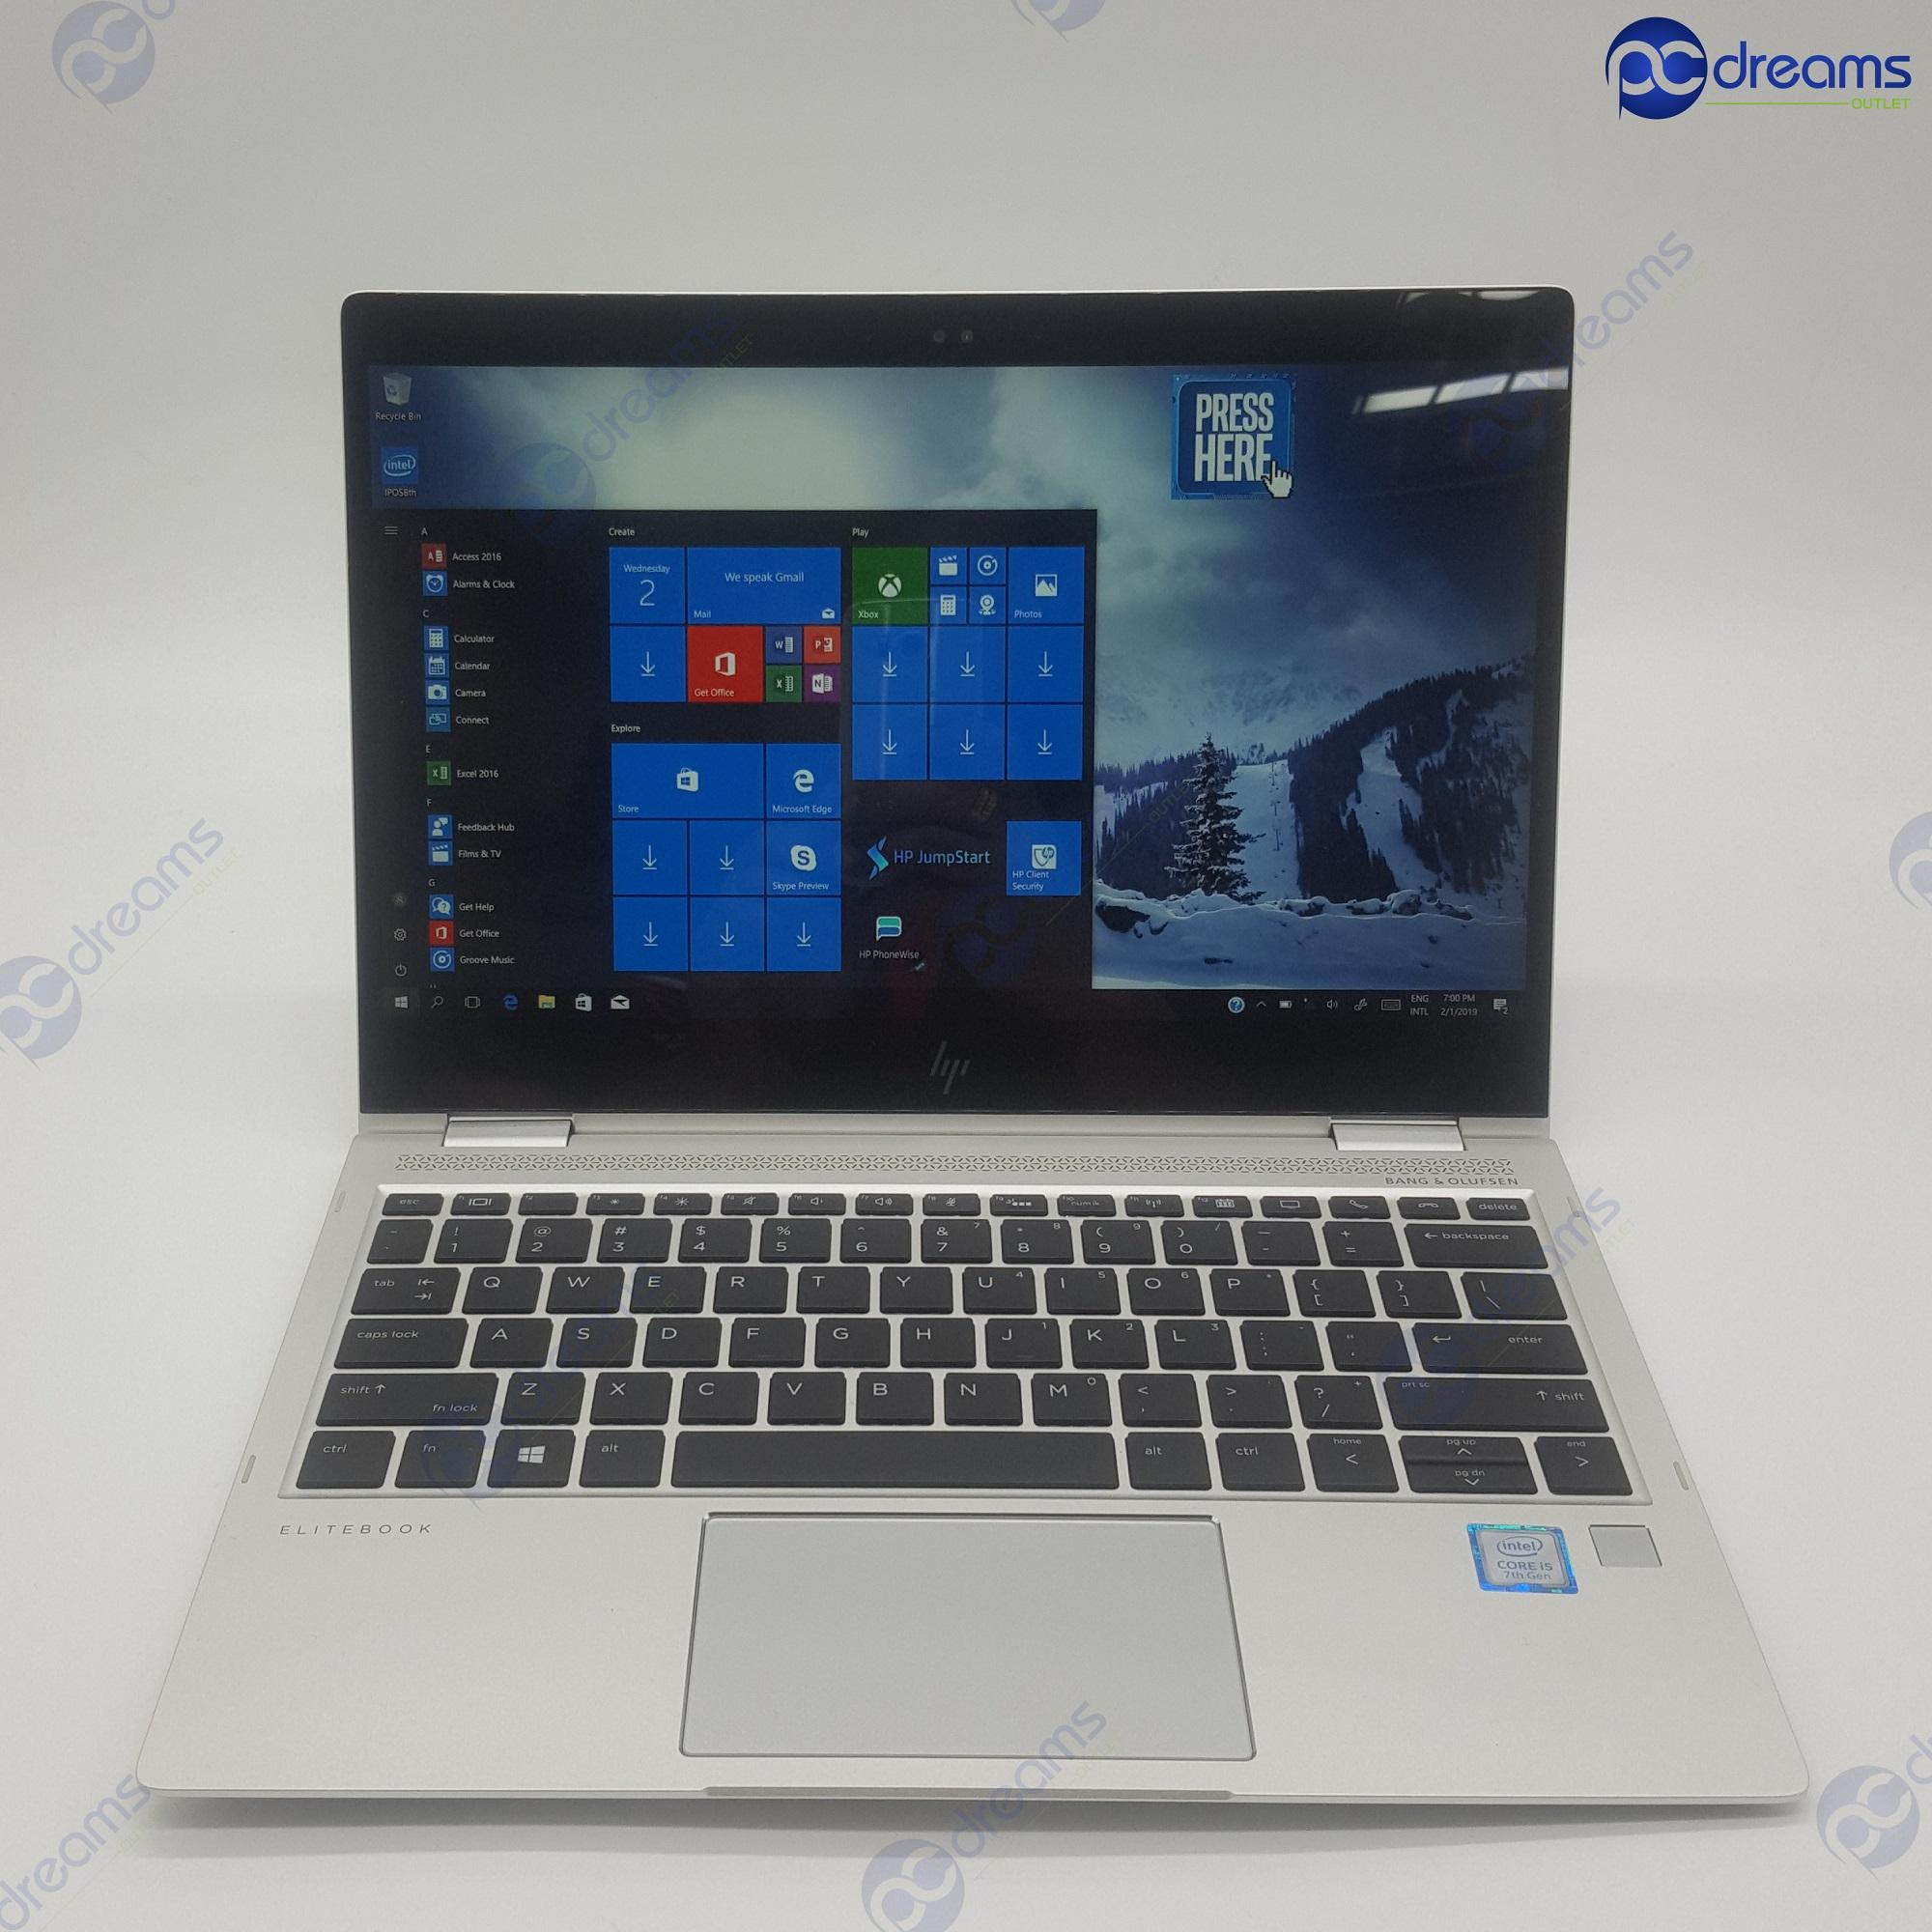 HP ELITEBOOK X360 1020 G2 (1EJ34AV) i5-7300U/16GB/256GB PCIe SSD [Premium Refreshed]